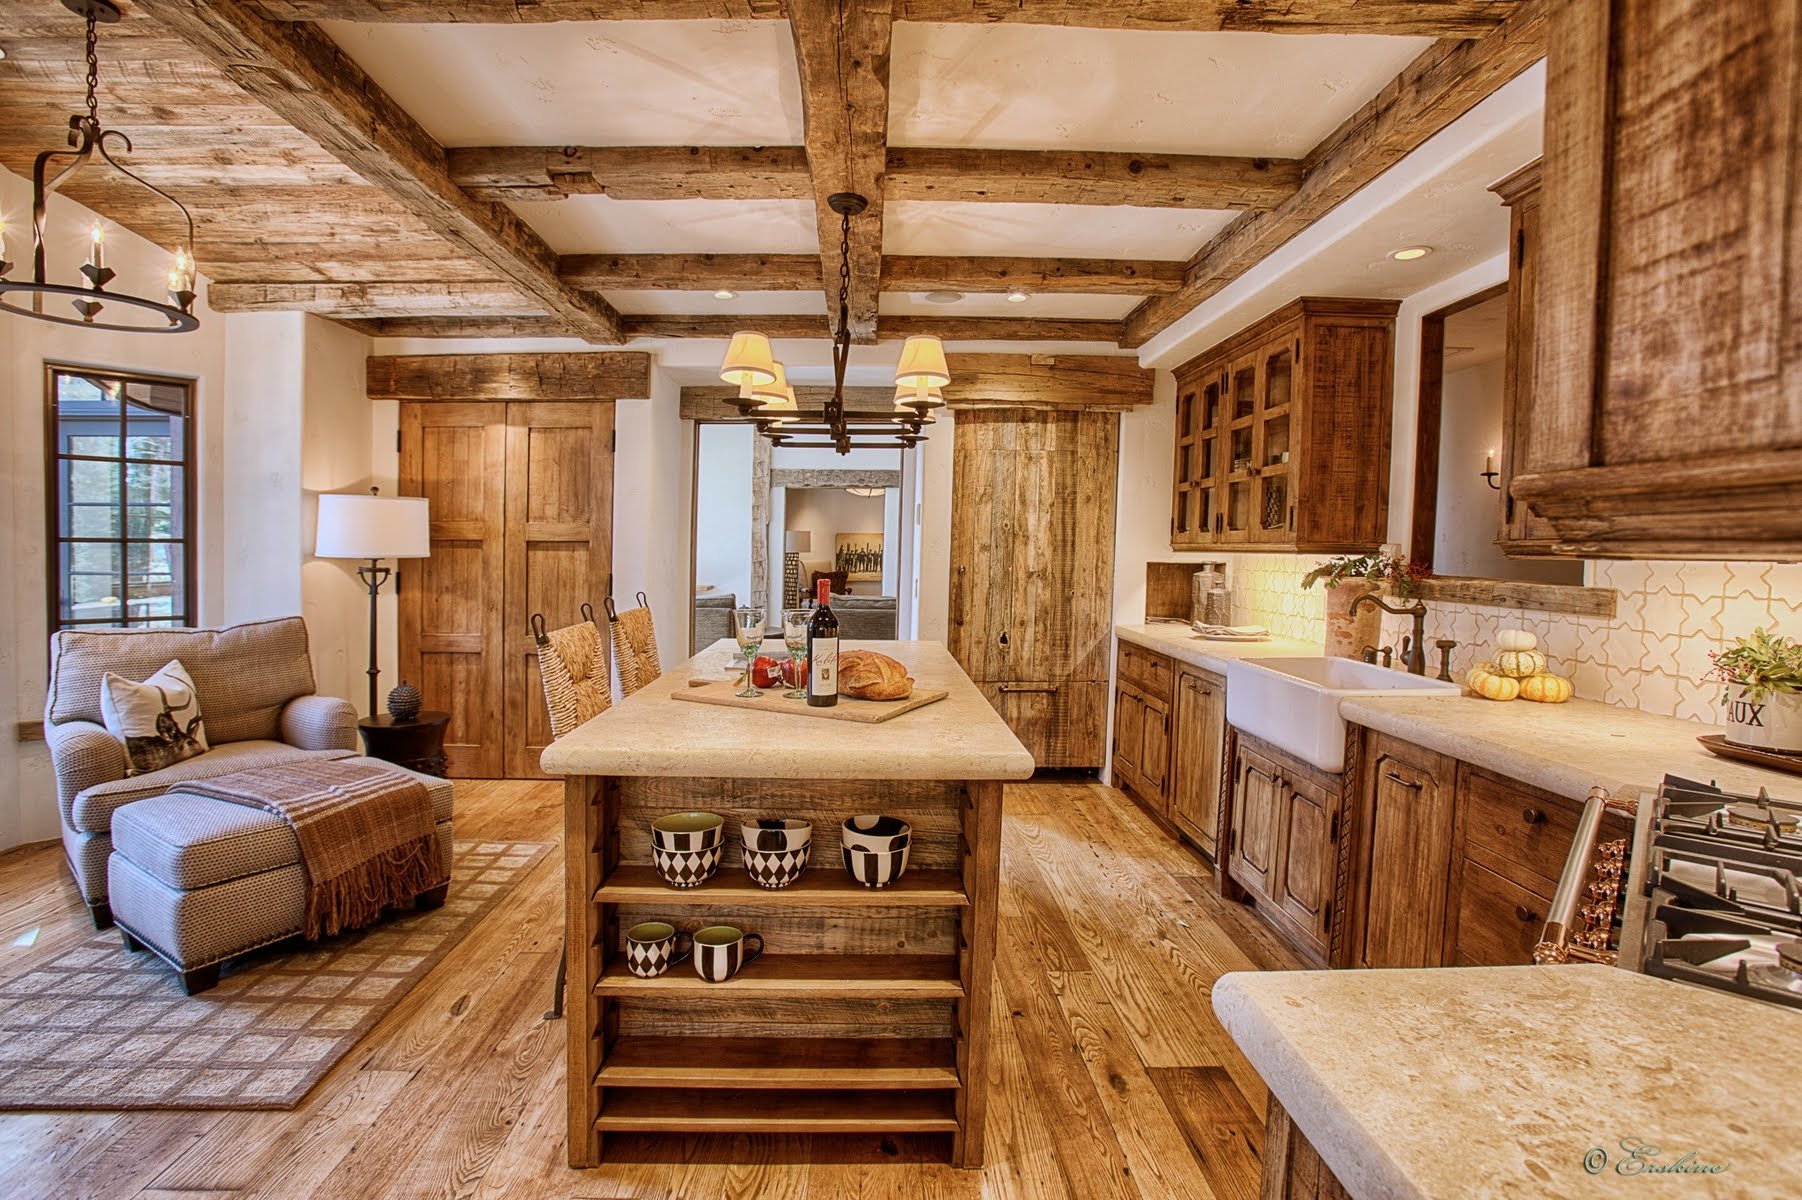 Genial Undeniable Rustic Kitchen Interior With Wooden Cabinets And Island And  Exposed Beams